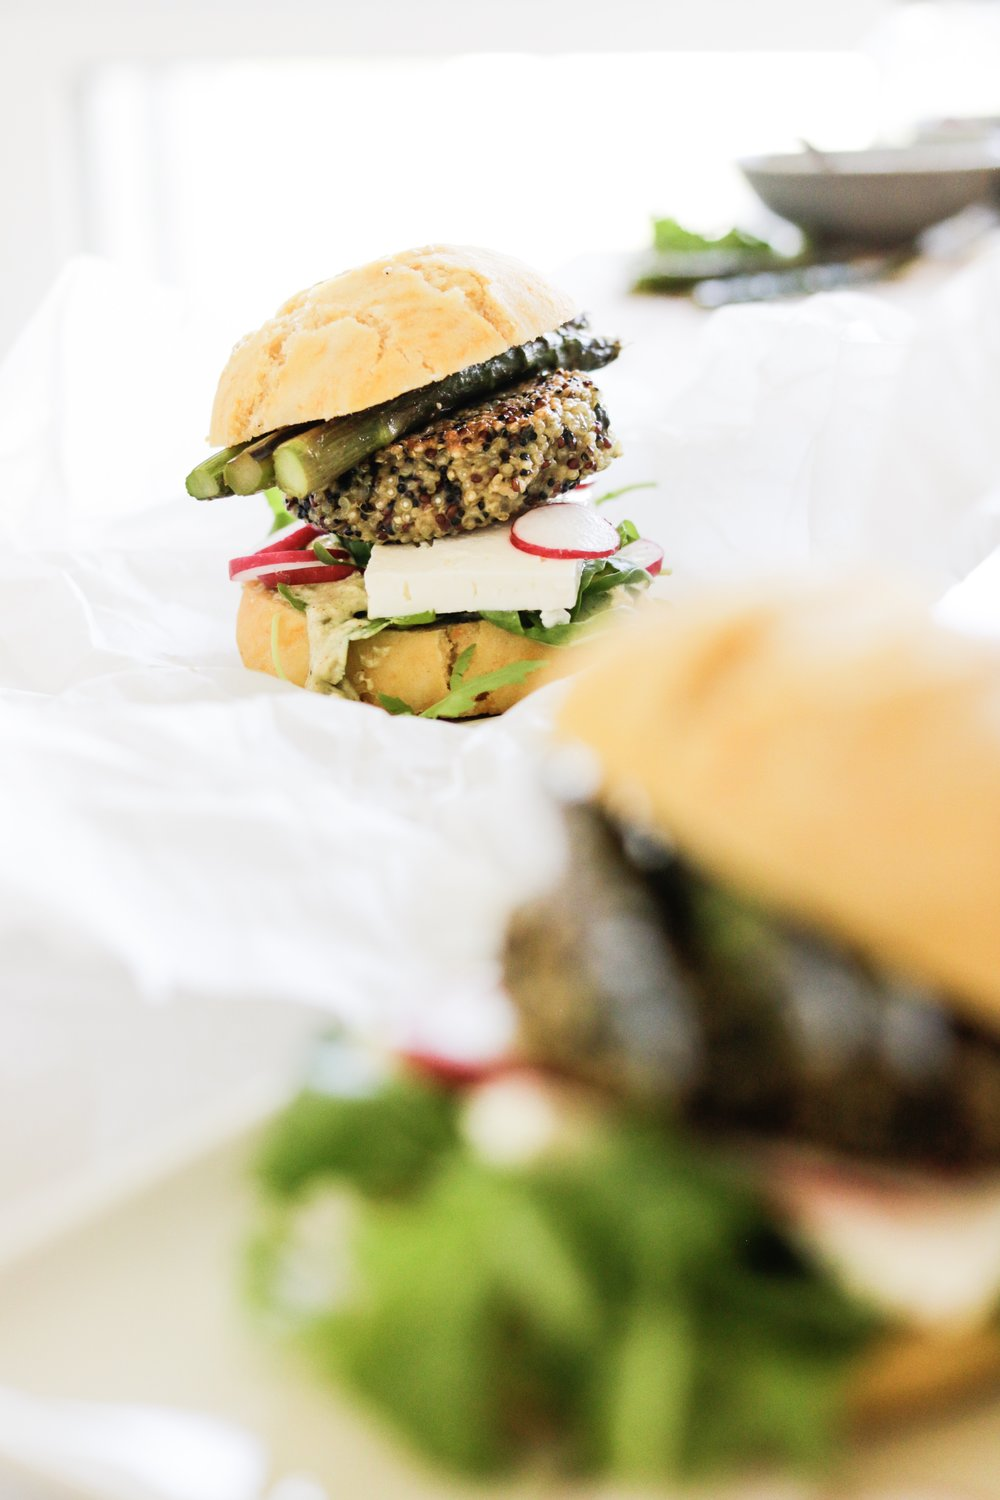 Foodblog SHARE & EAT - Quinoa Burger